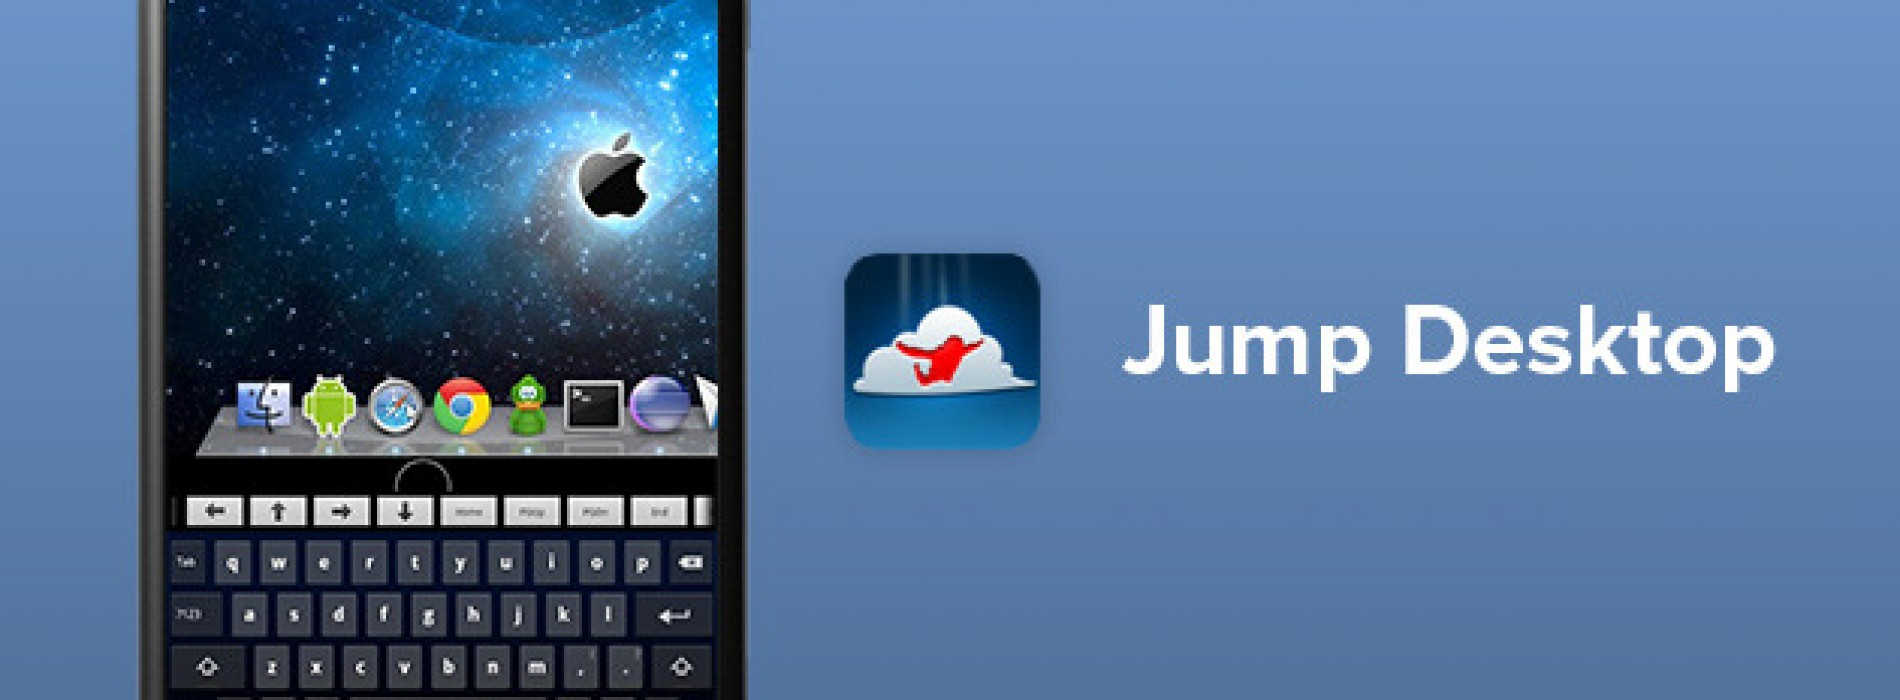 Jump Desktop: Use your Android device to control your PC $2.49 [Deal of the Day]